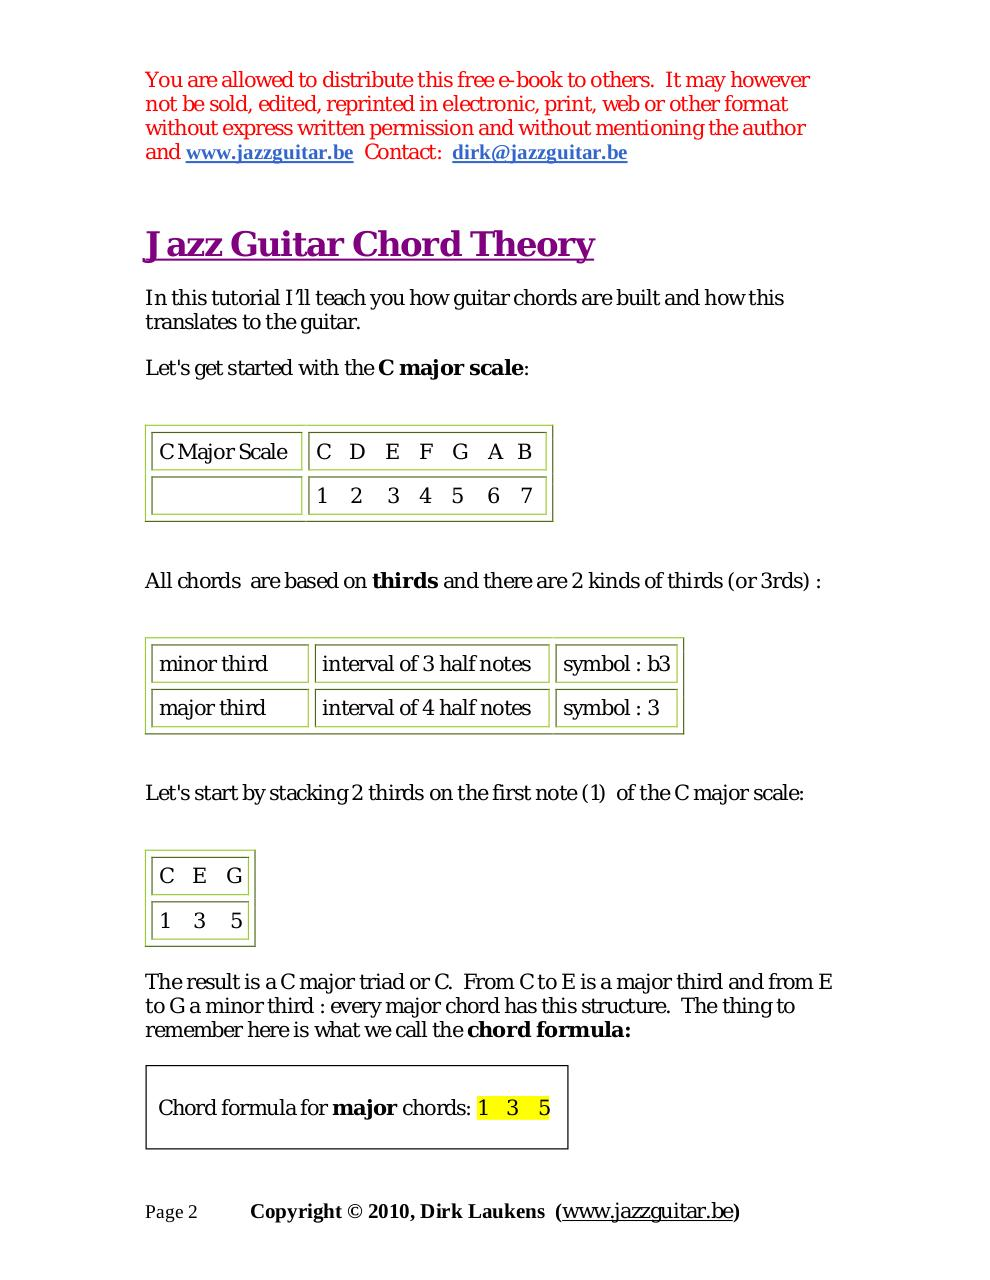 Jazz Guitar Chord Theory (part 1) - The Jazz Guitar Chords